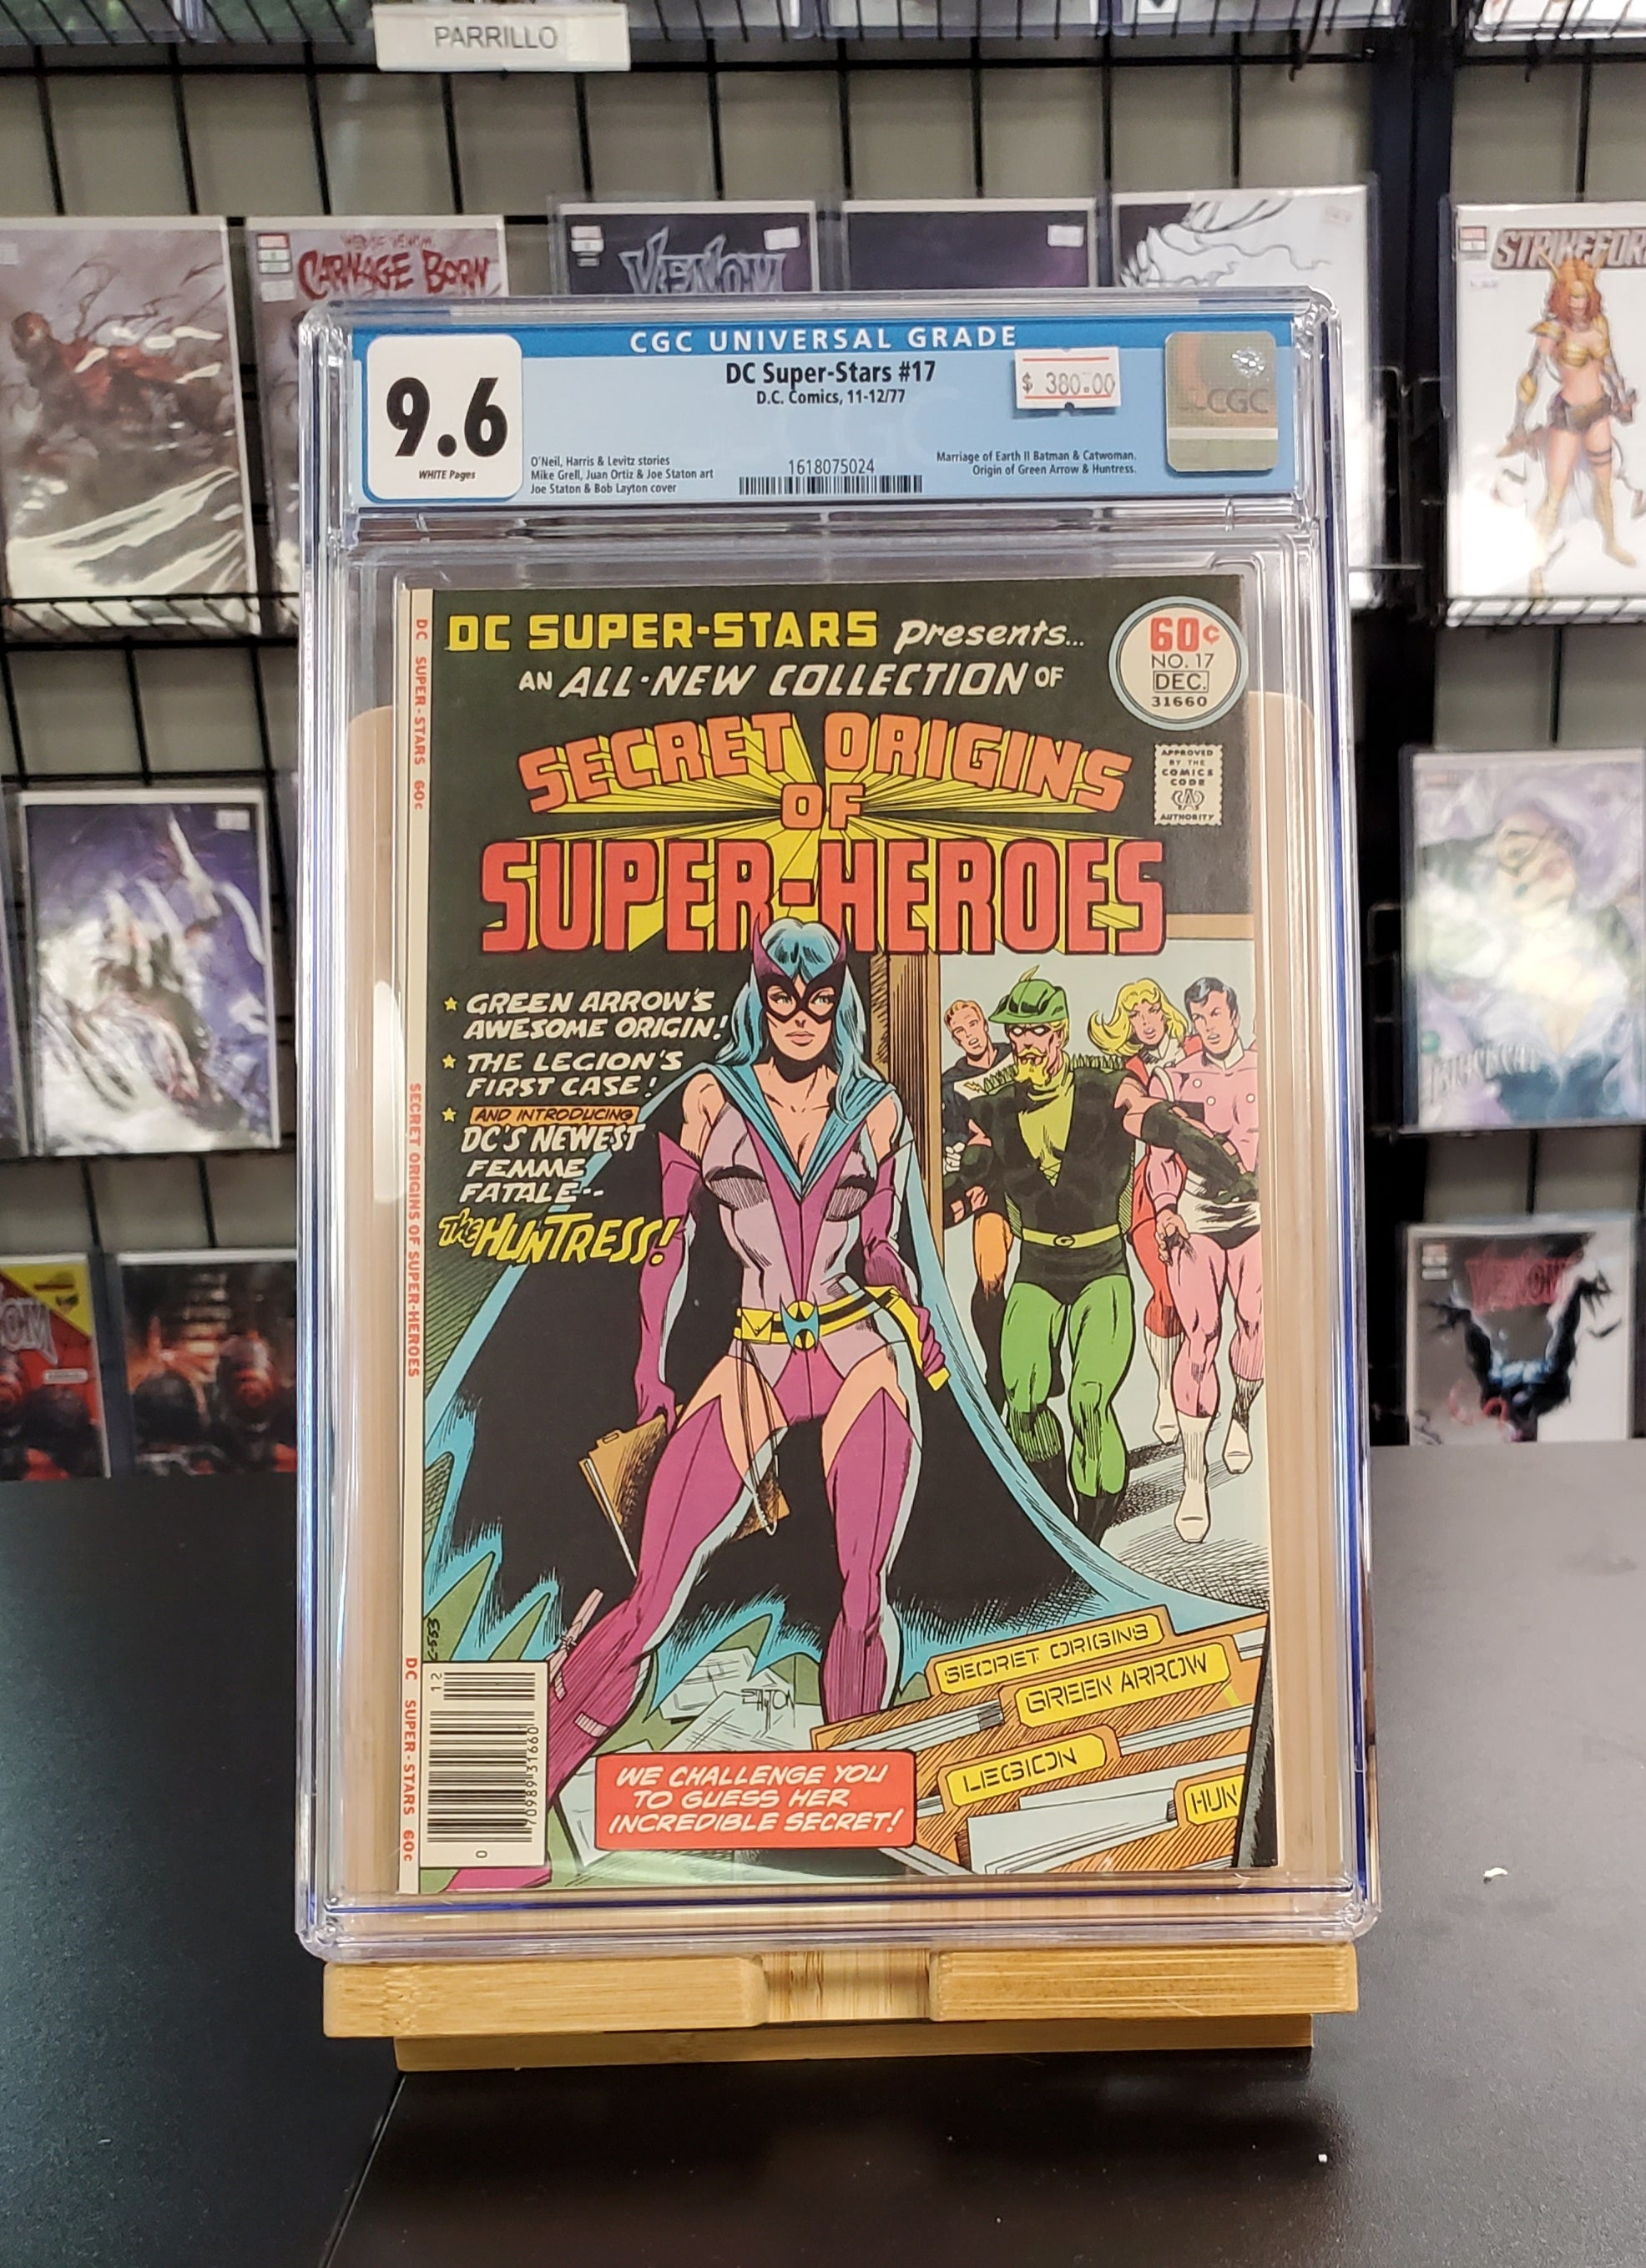 9.6 CGC DC Super-Stars #17 Marriage of Earth II Batman & Catwoman Origin of Green Arrow & Huntress 1977